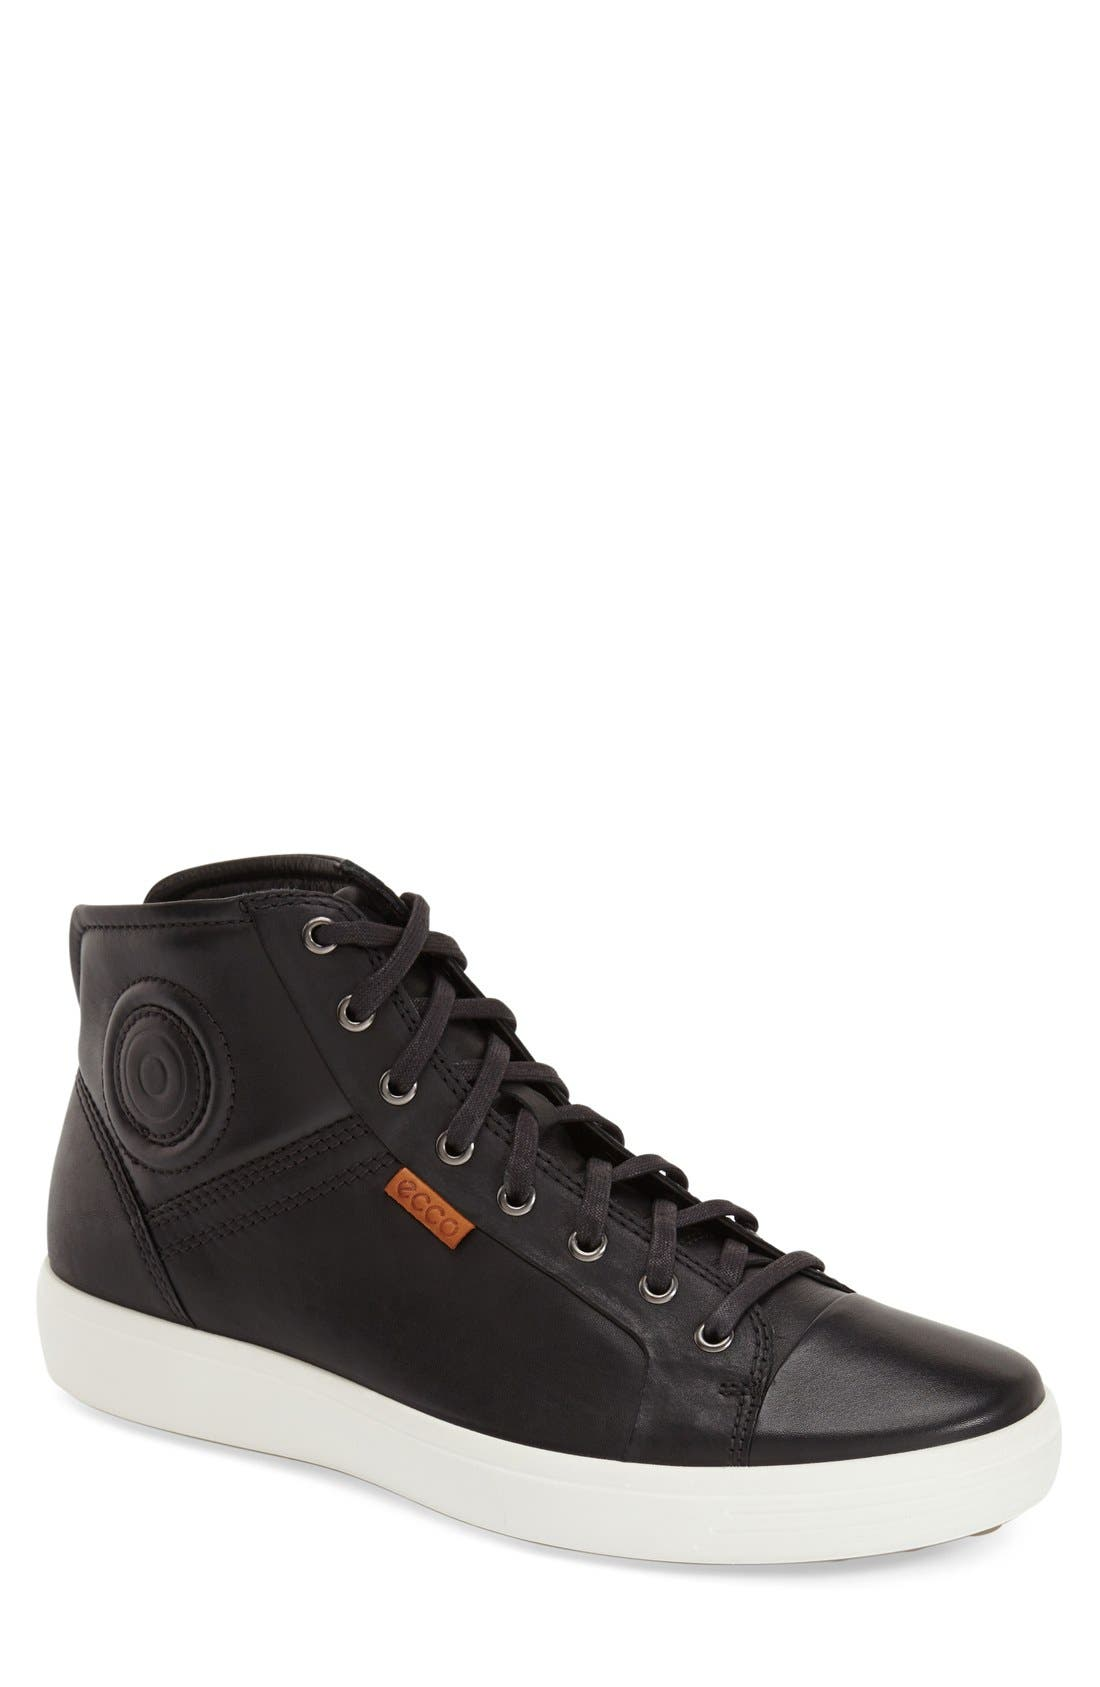 Main Image - ECCO 'Soft 7' High Top Sneaker (Men)